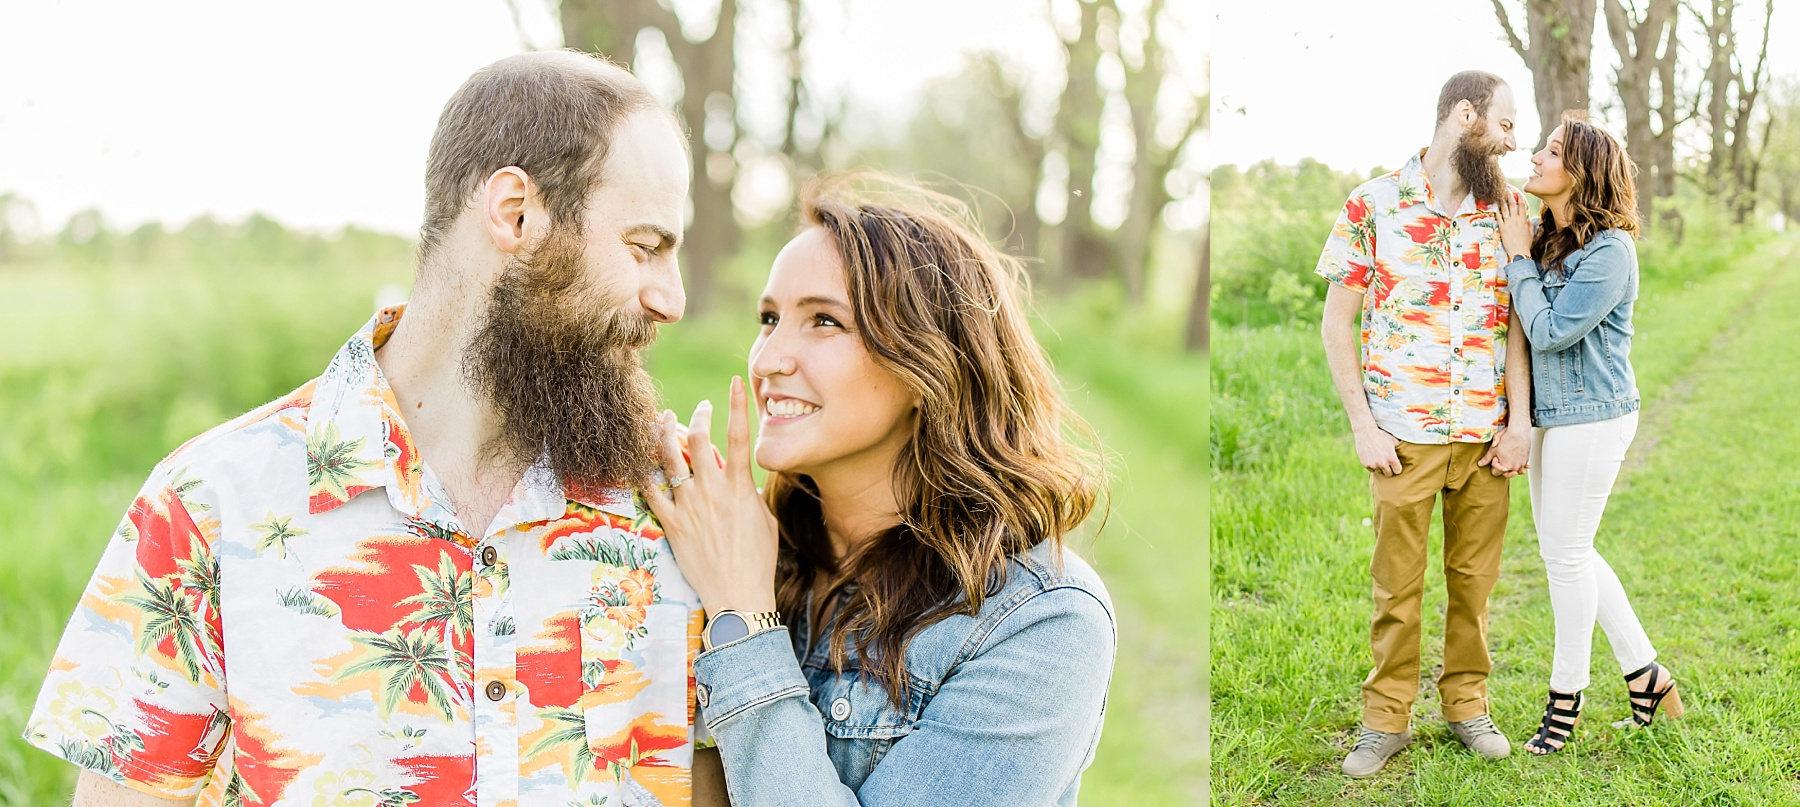 monticello indiana wedding engagement photography simple adventure weird_0040.jpg